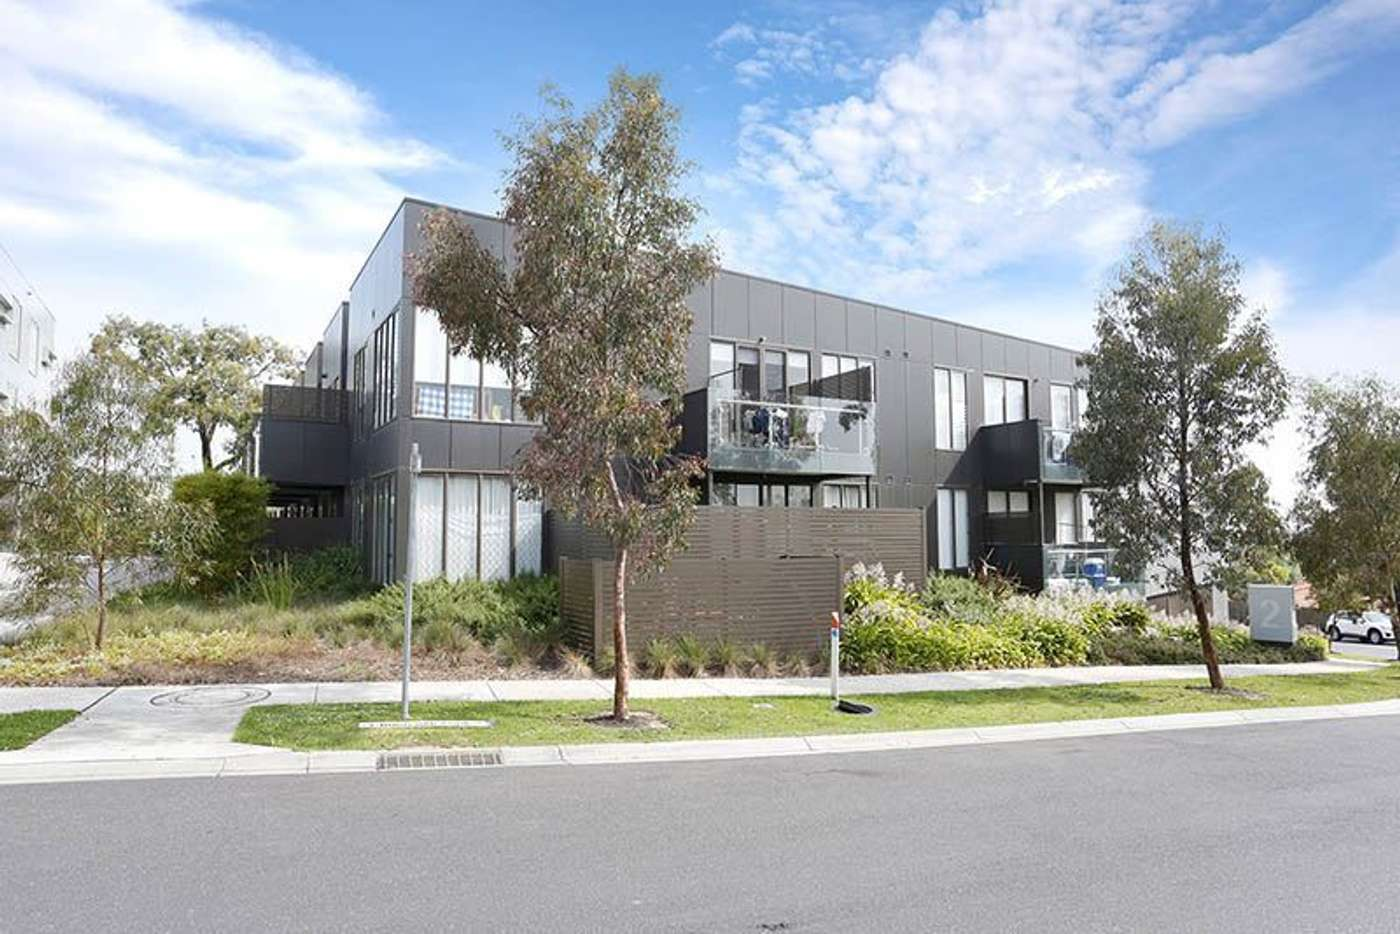 Main view of Homely apartment listing, 111/2 Yarra Bing Crescent, Burwood VIC 3125